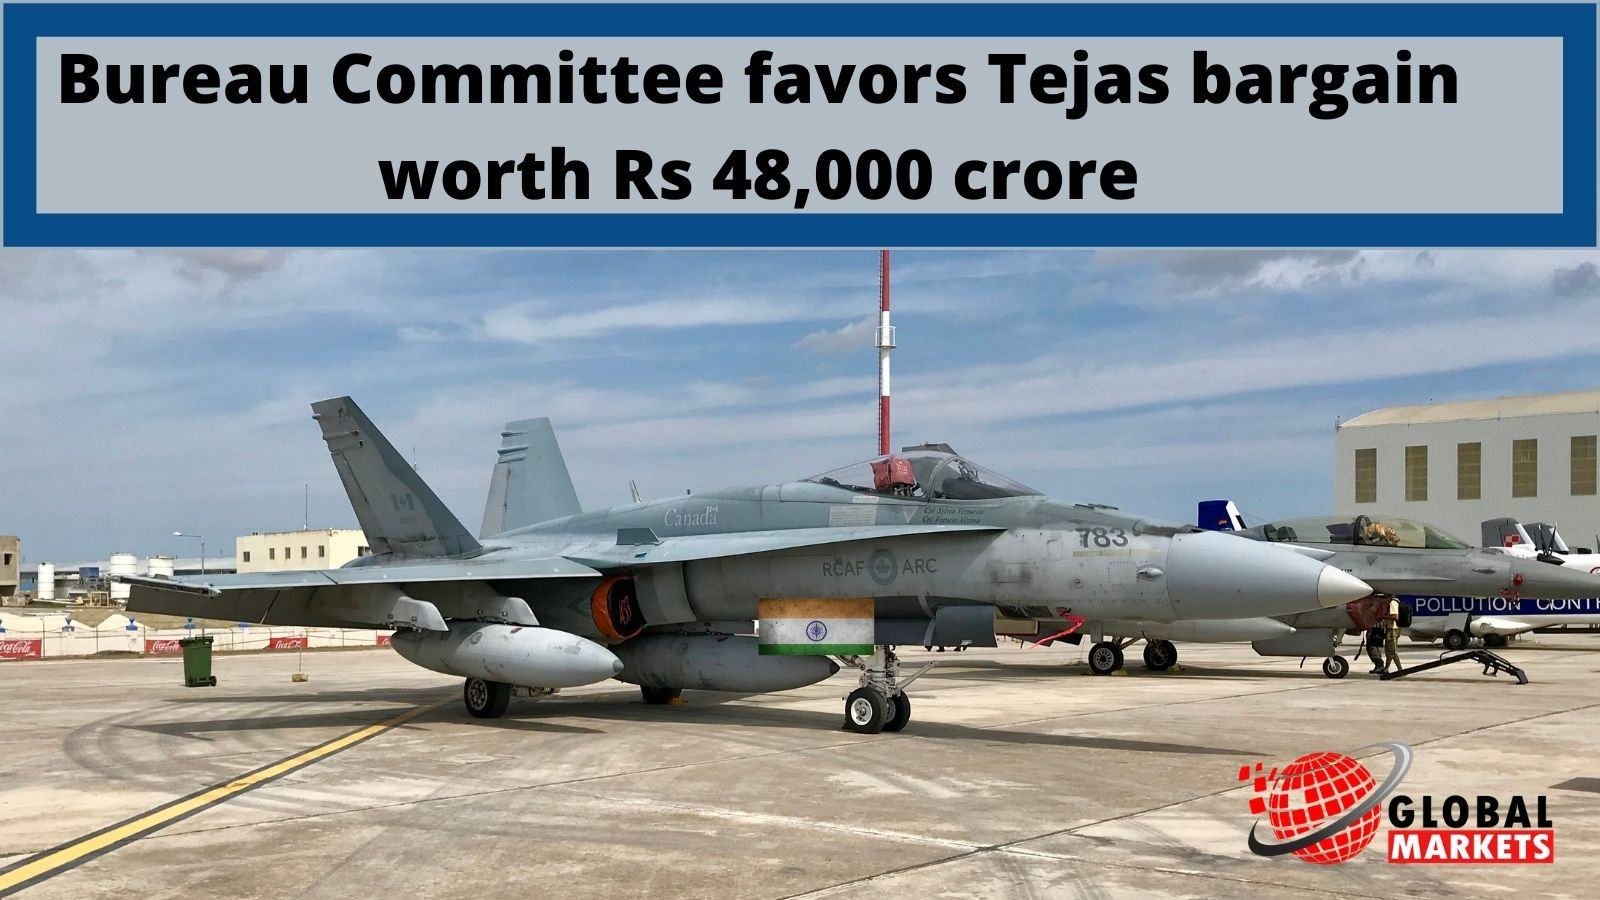 Bureau Committee supports Tejas bargain worth Rs 48,000 crore